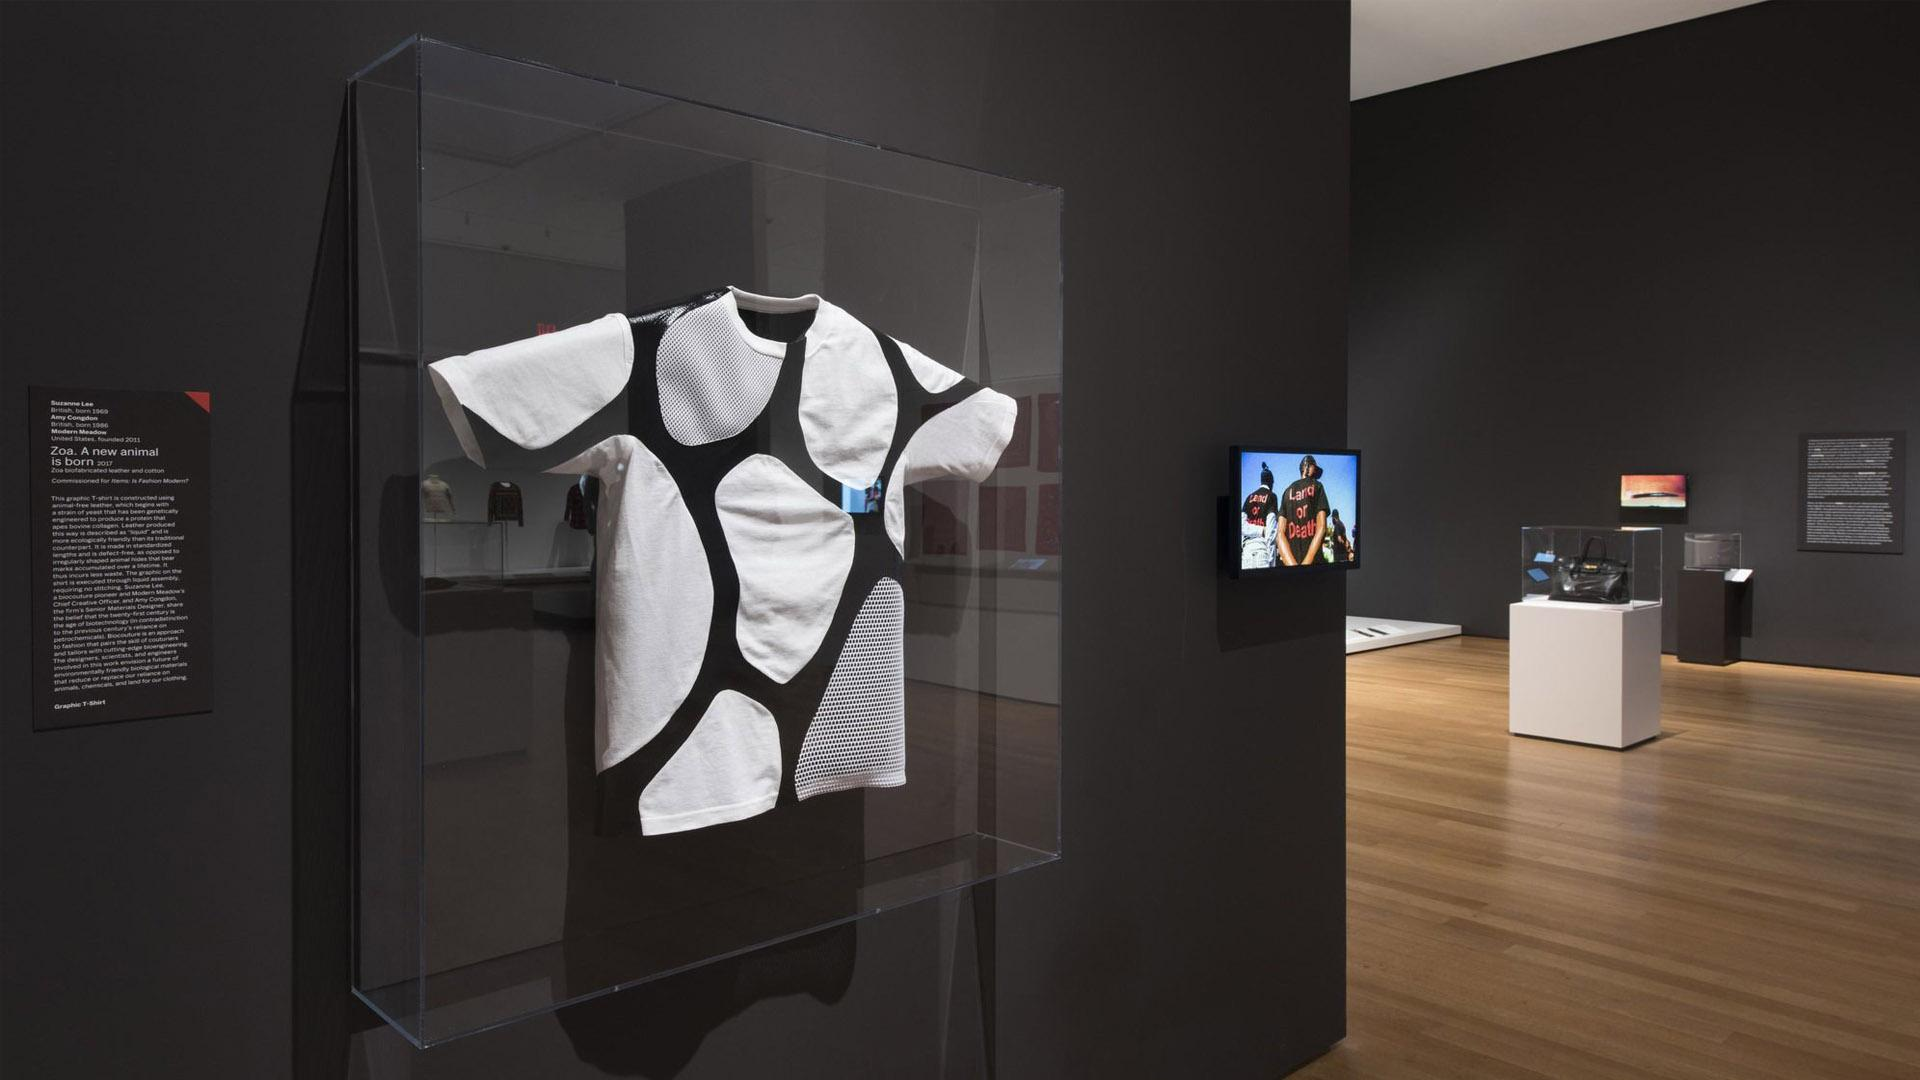 Zoa shirt on display at MoMA